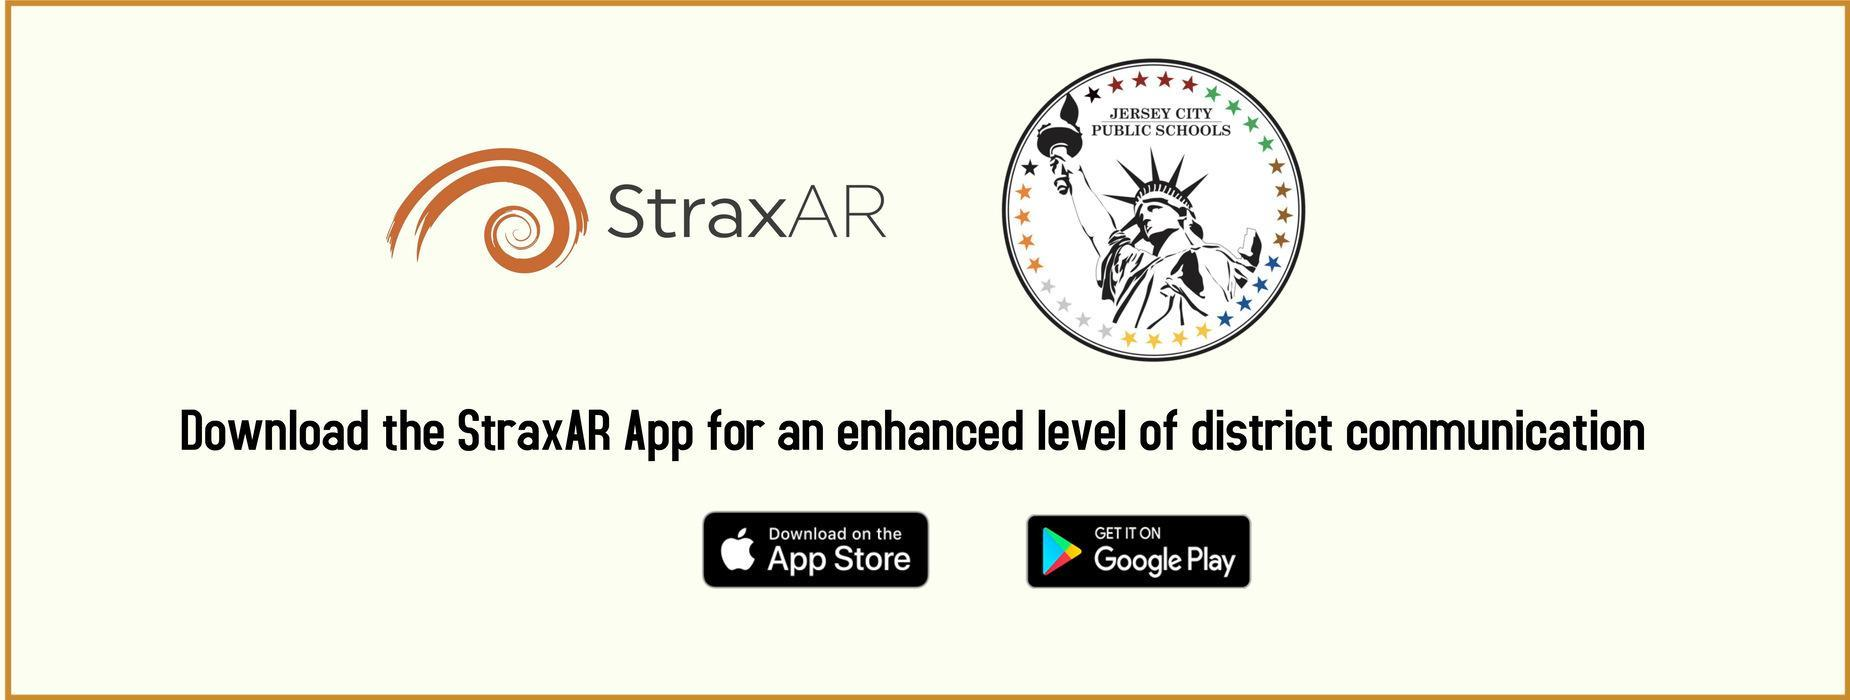 straxar and jcps